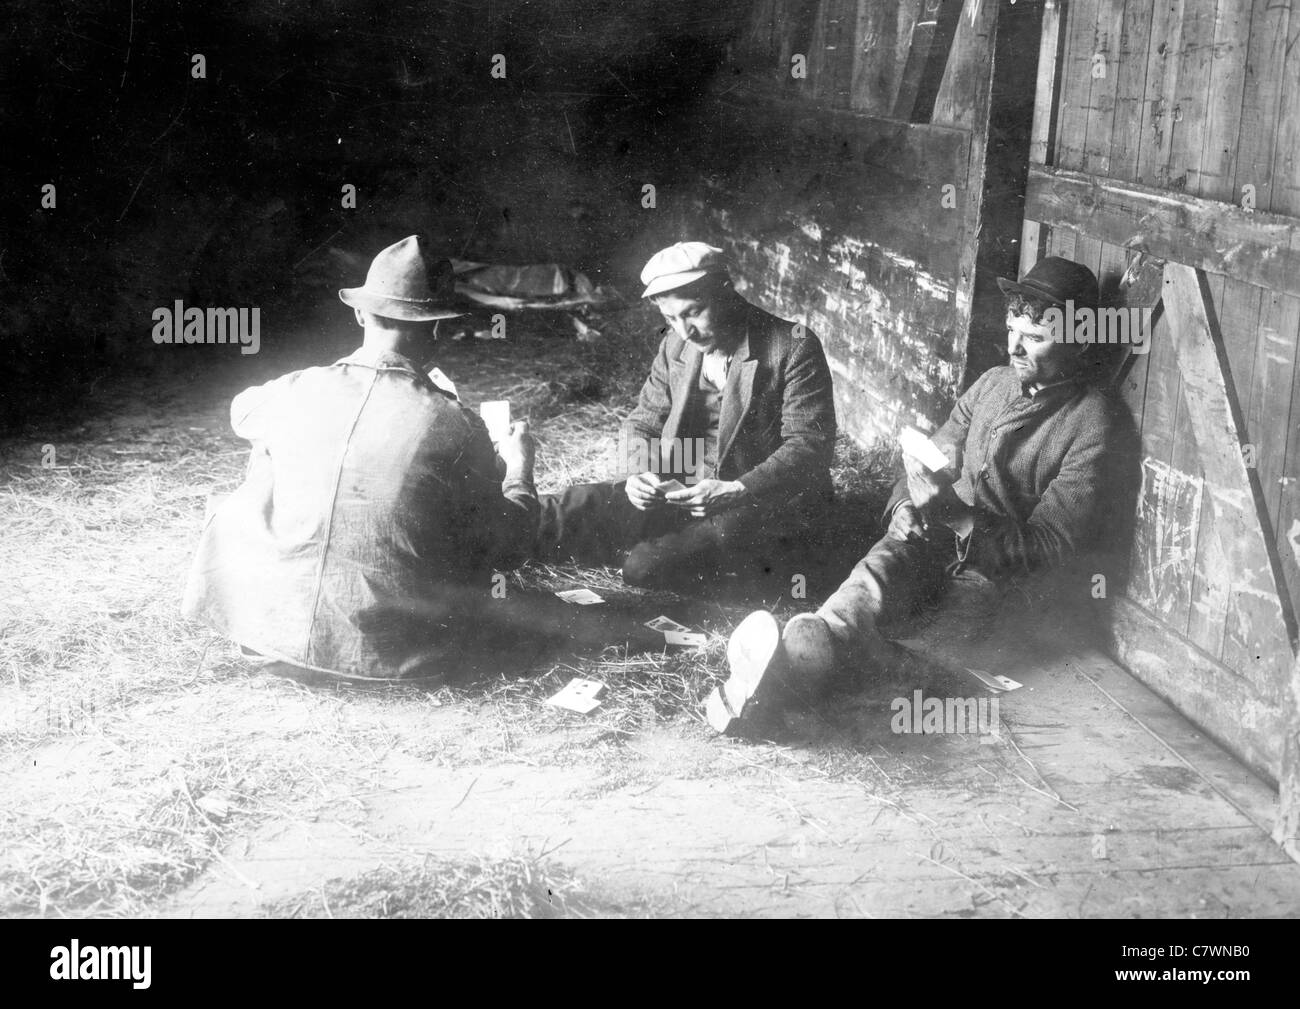 Tramps play cards in box car, USA - Stock Image